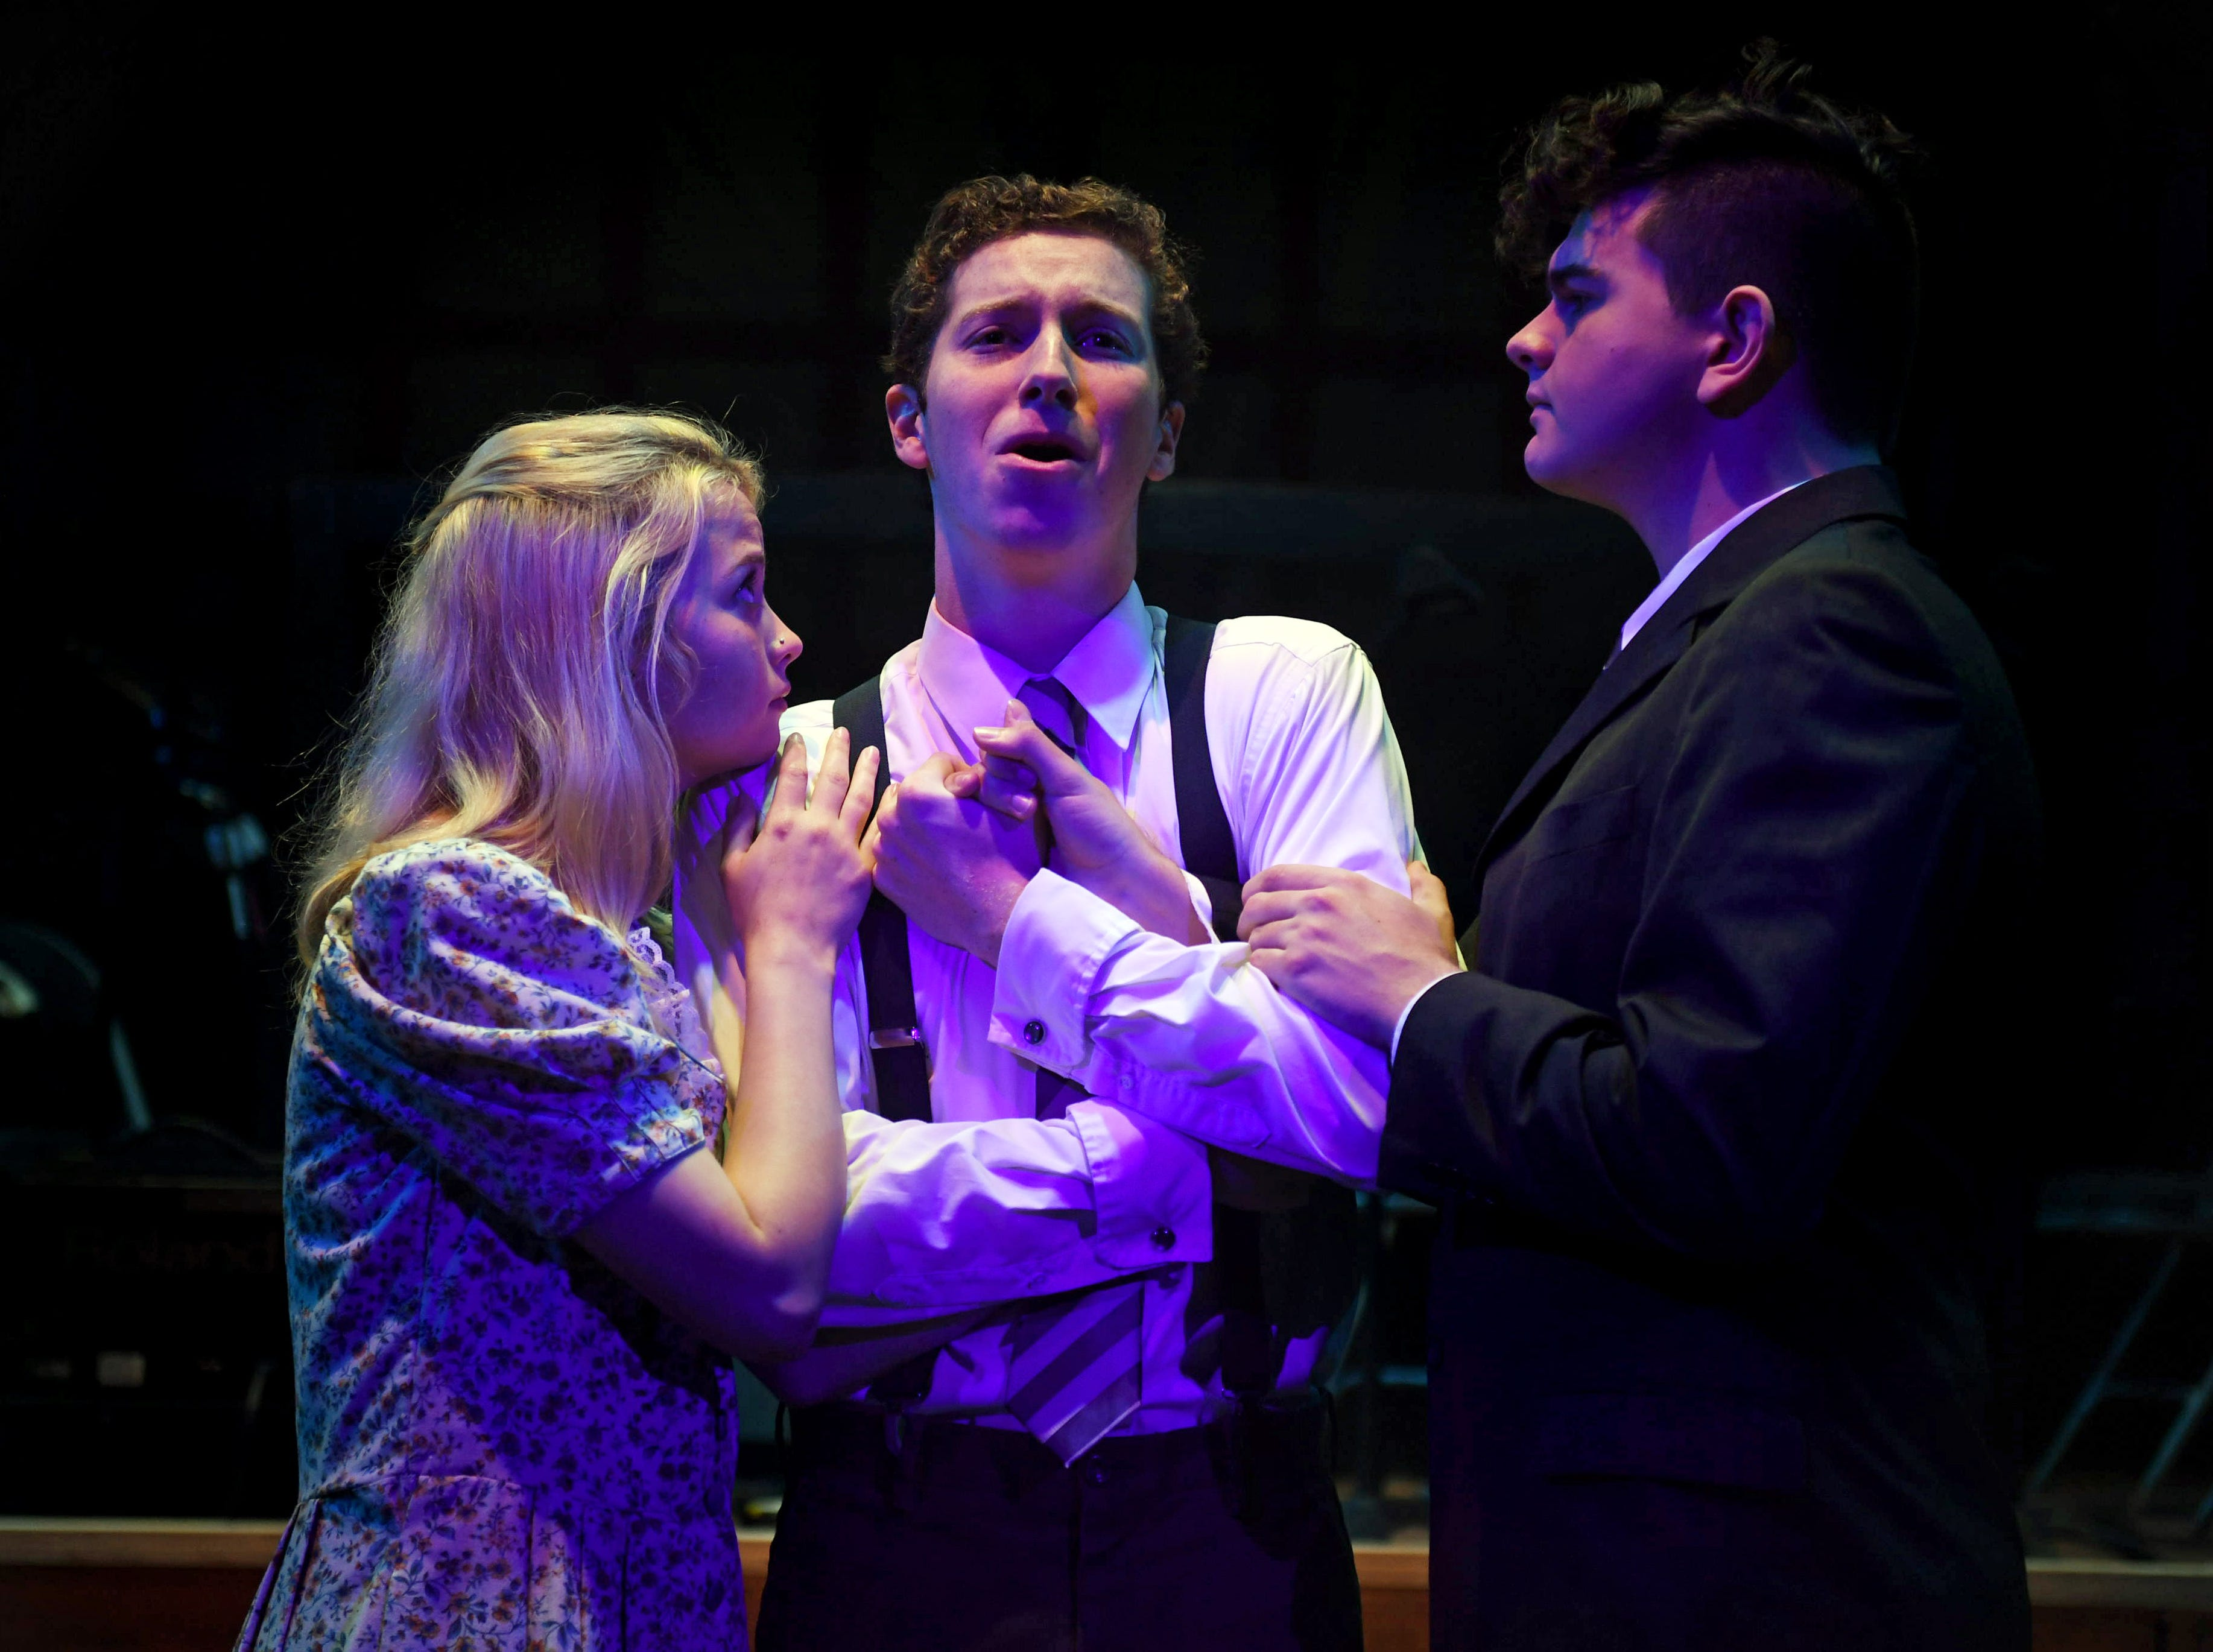 """Melchior (Spencer Lail, center) is comforted by his friends, Wendla (Hannah MacGregor) and Moritz (Tristan Ferrara) in TheatreTCC's production of """"Spring Awakening."""""""